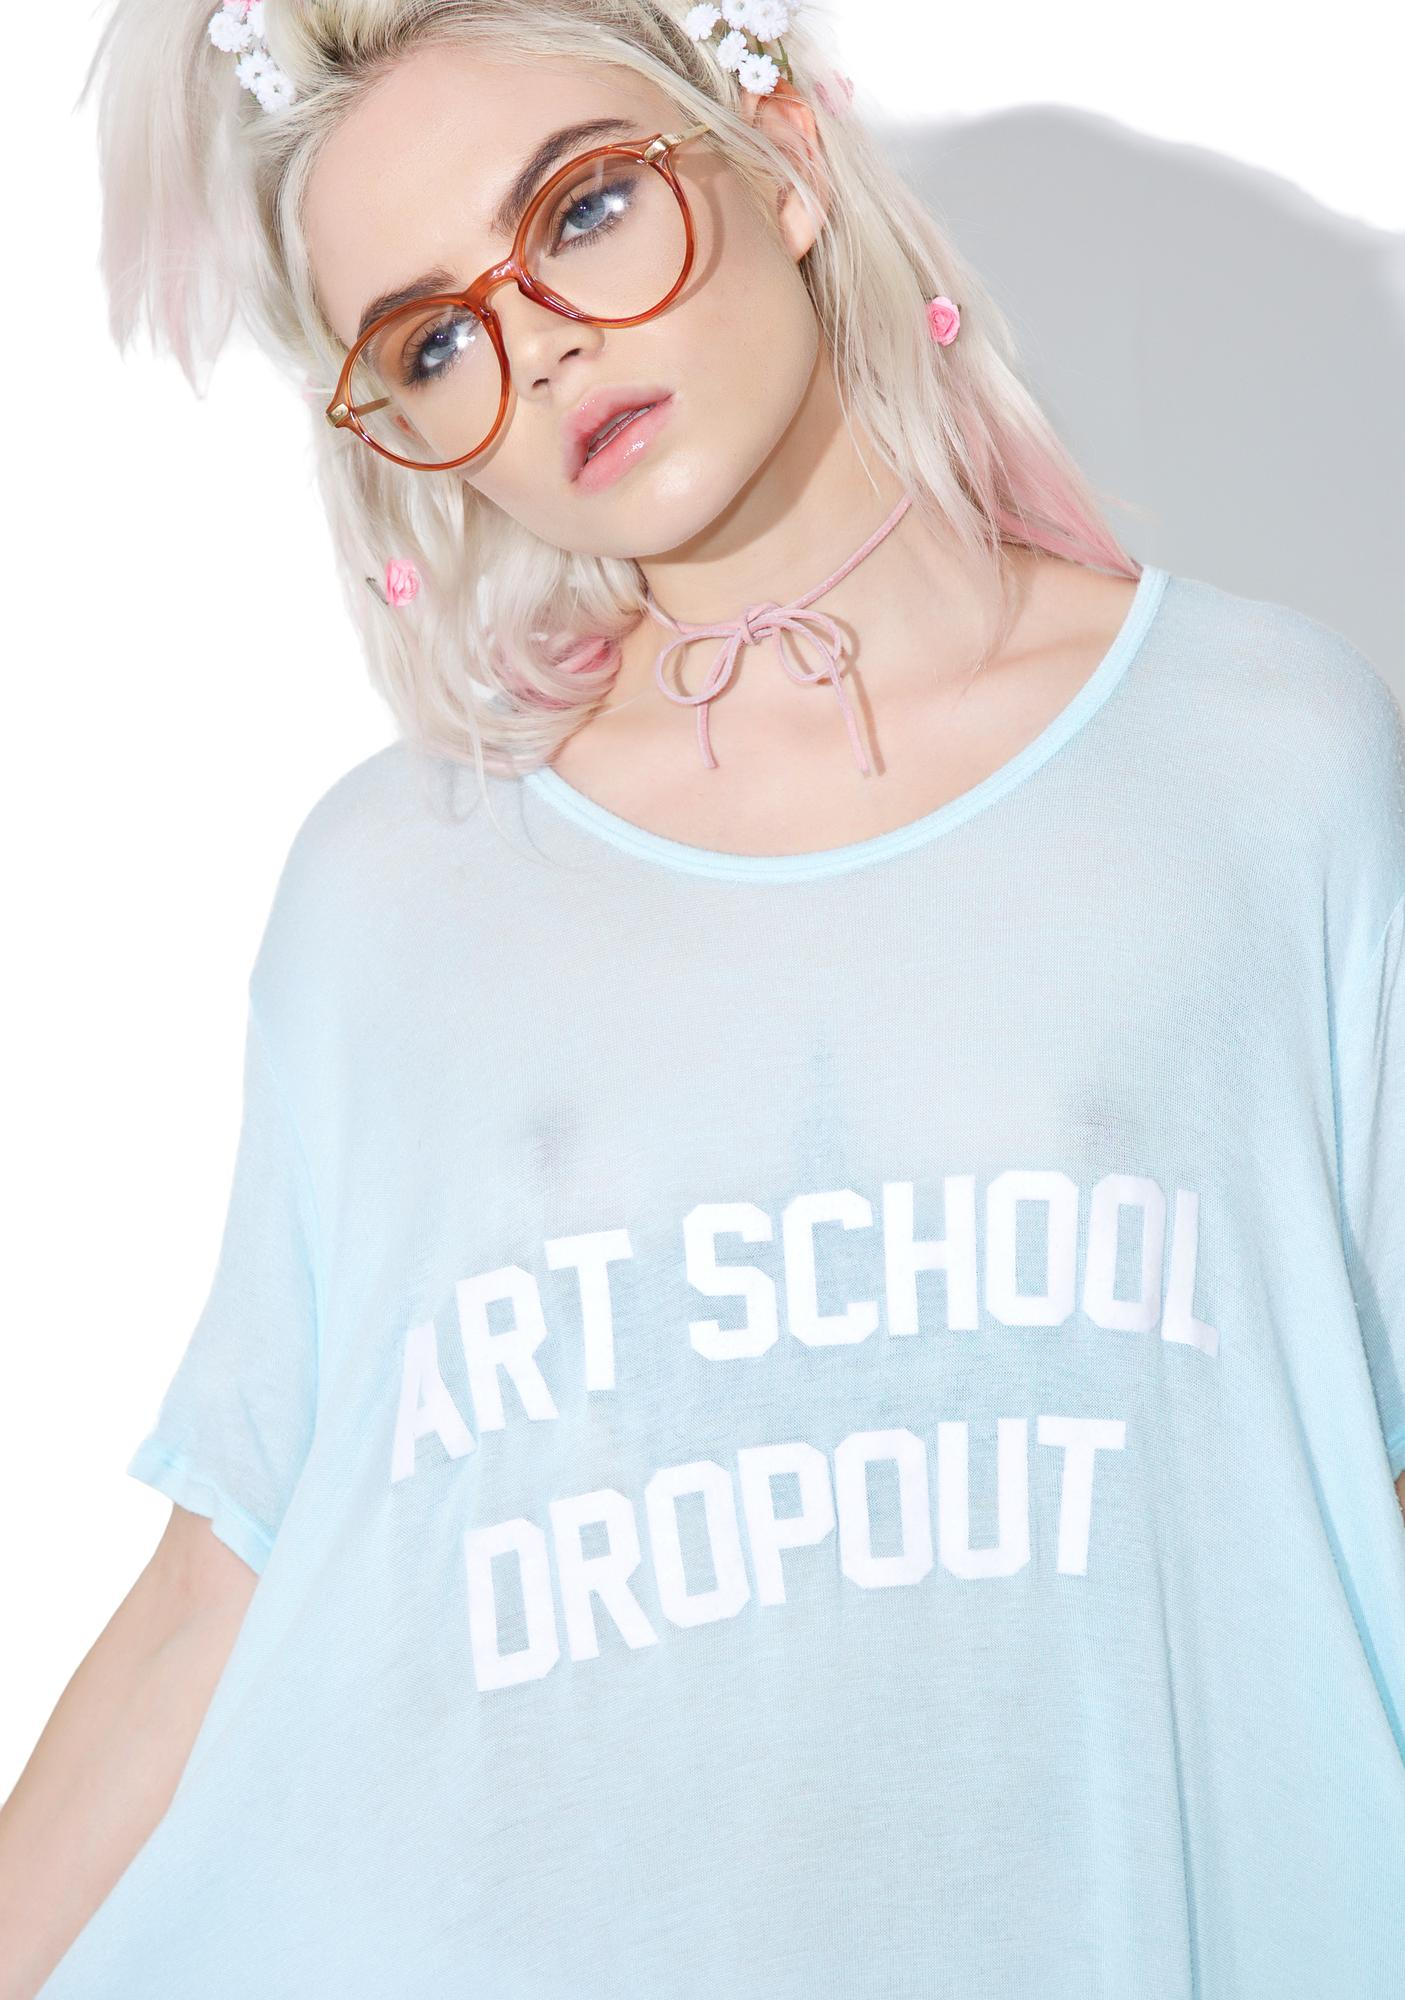 Daydream Nation Art School Dropout Tee